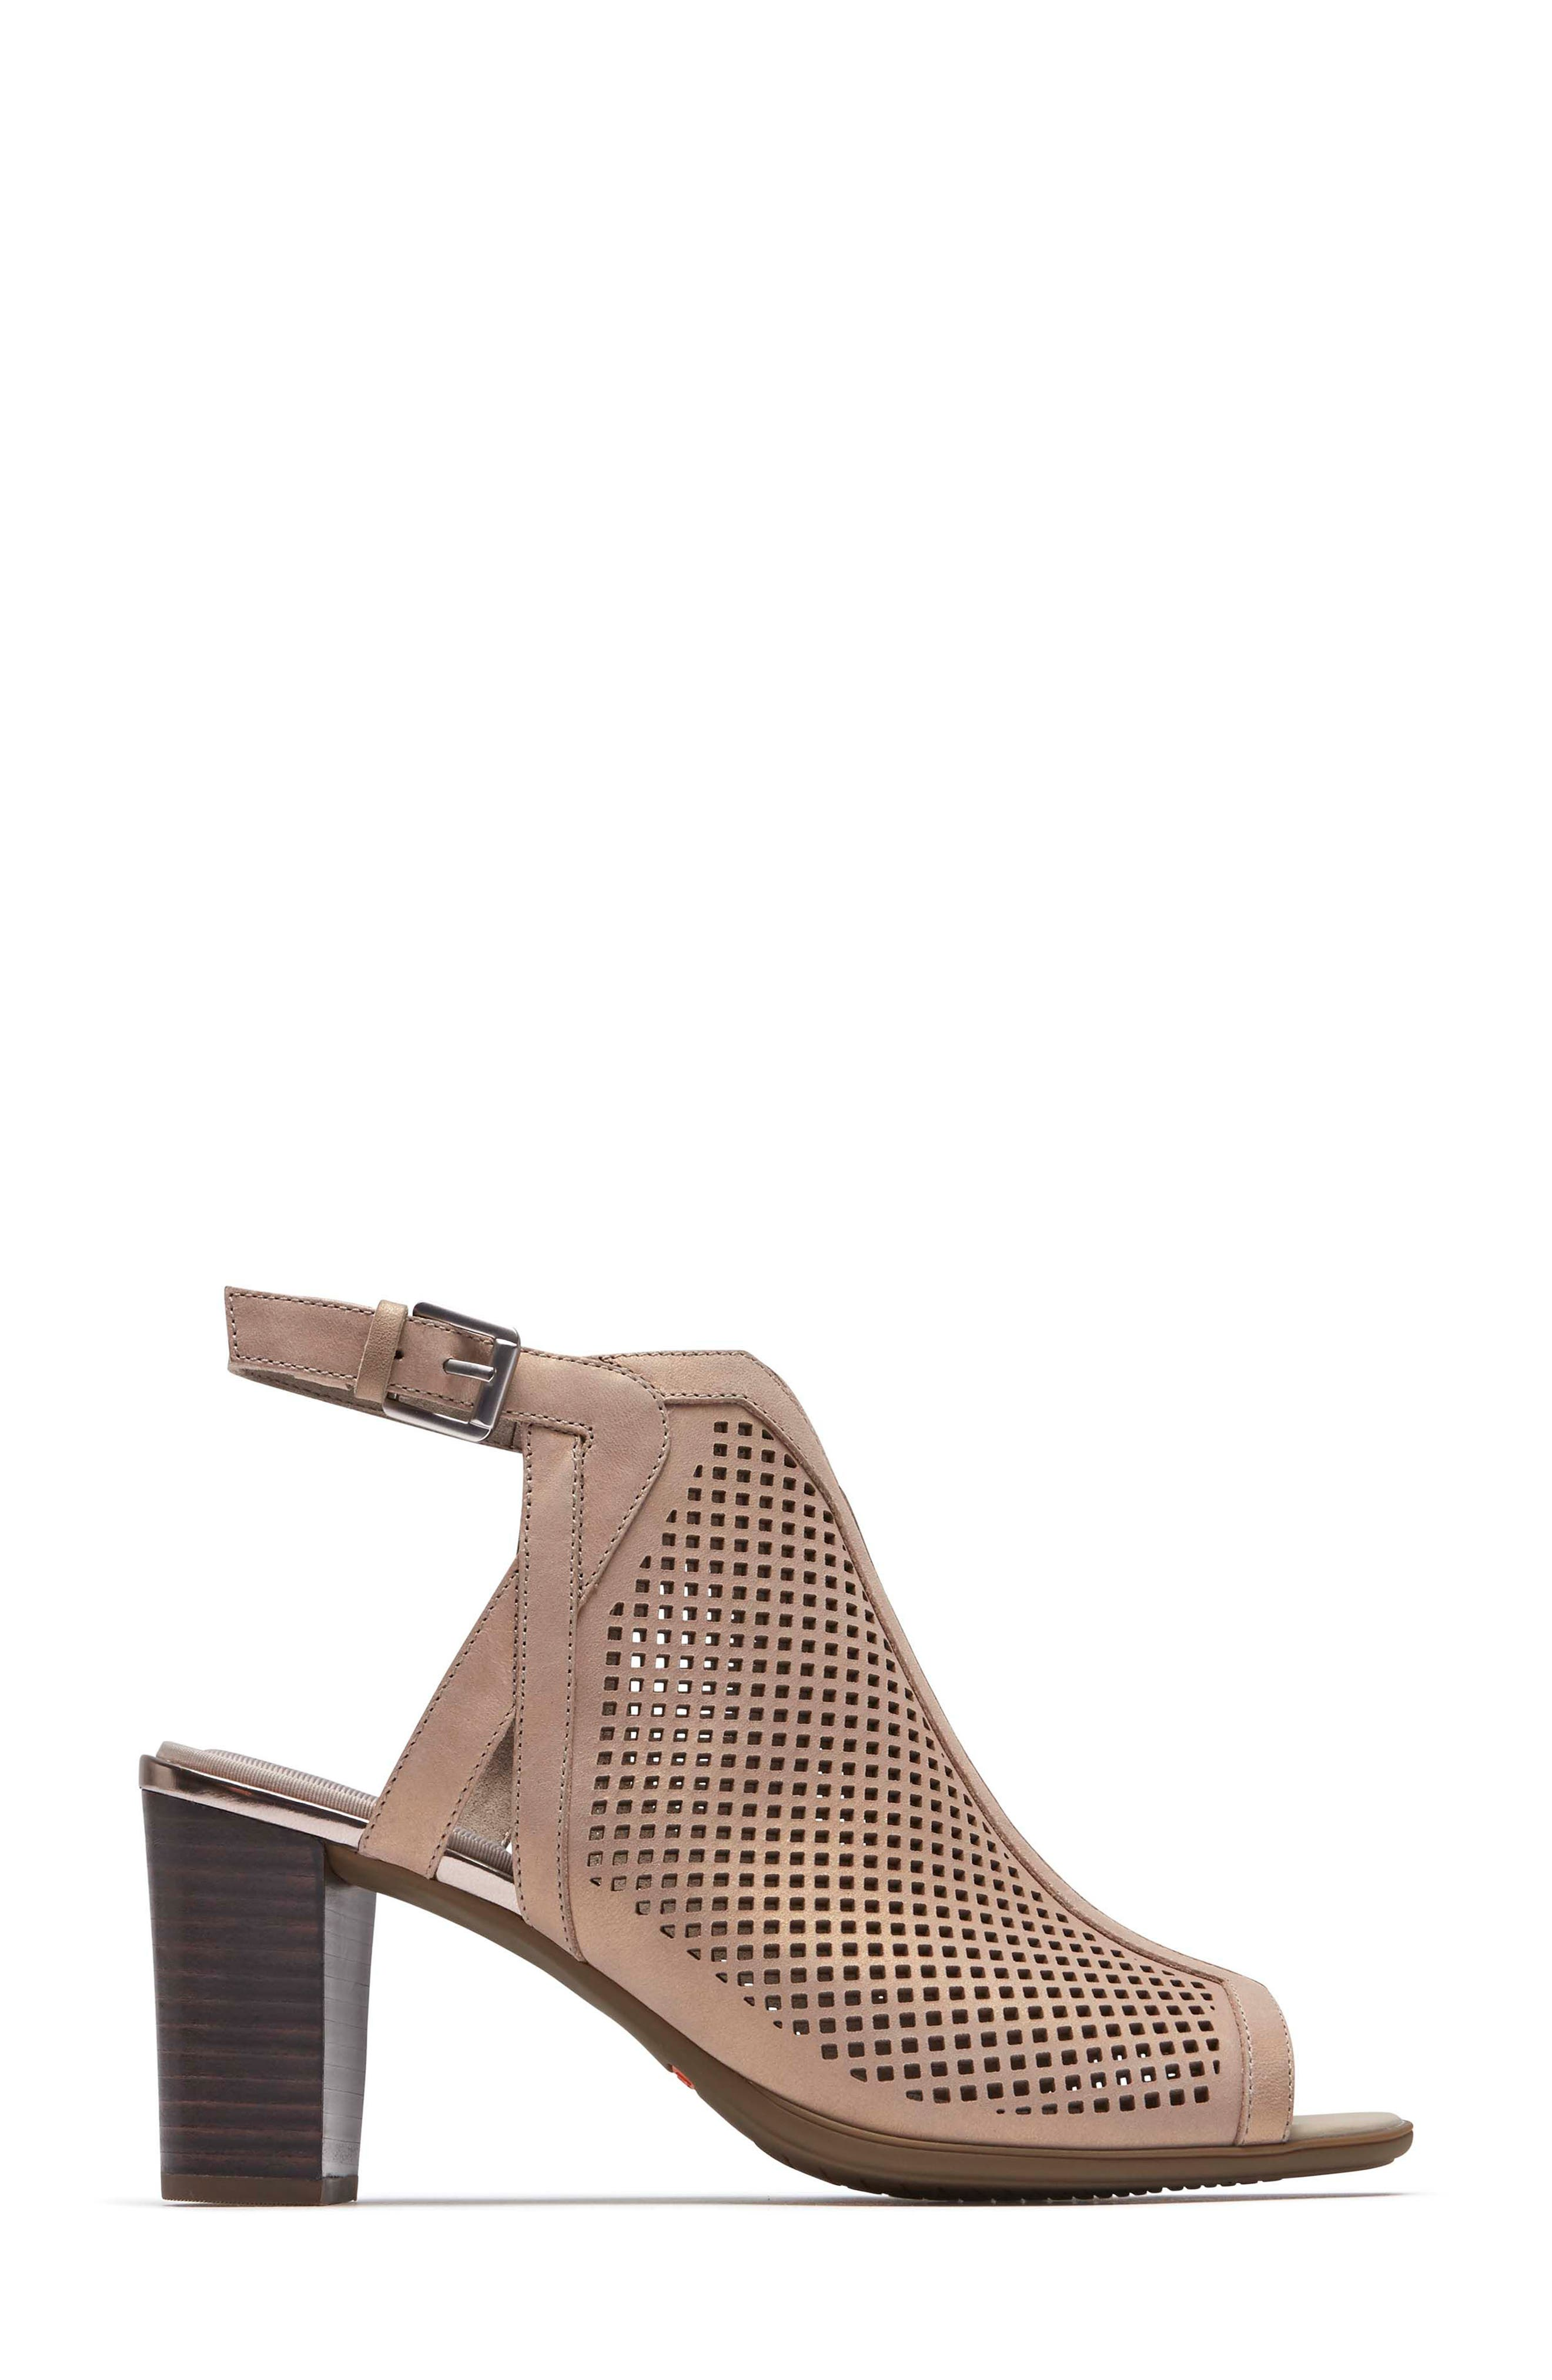 Total Motion Luxe Perforated Sandal,                             Alternate thumbnail 3, color,                             DOVE LEATHER